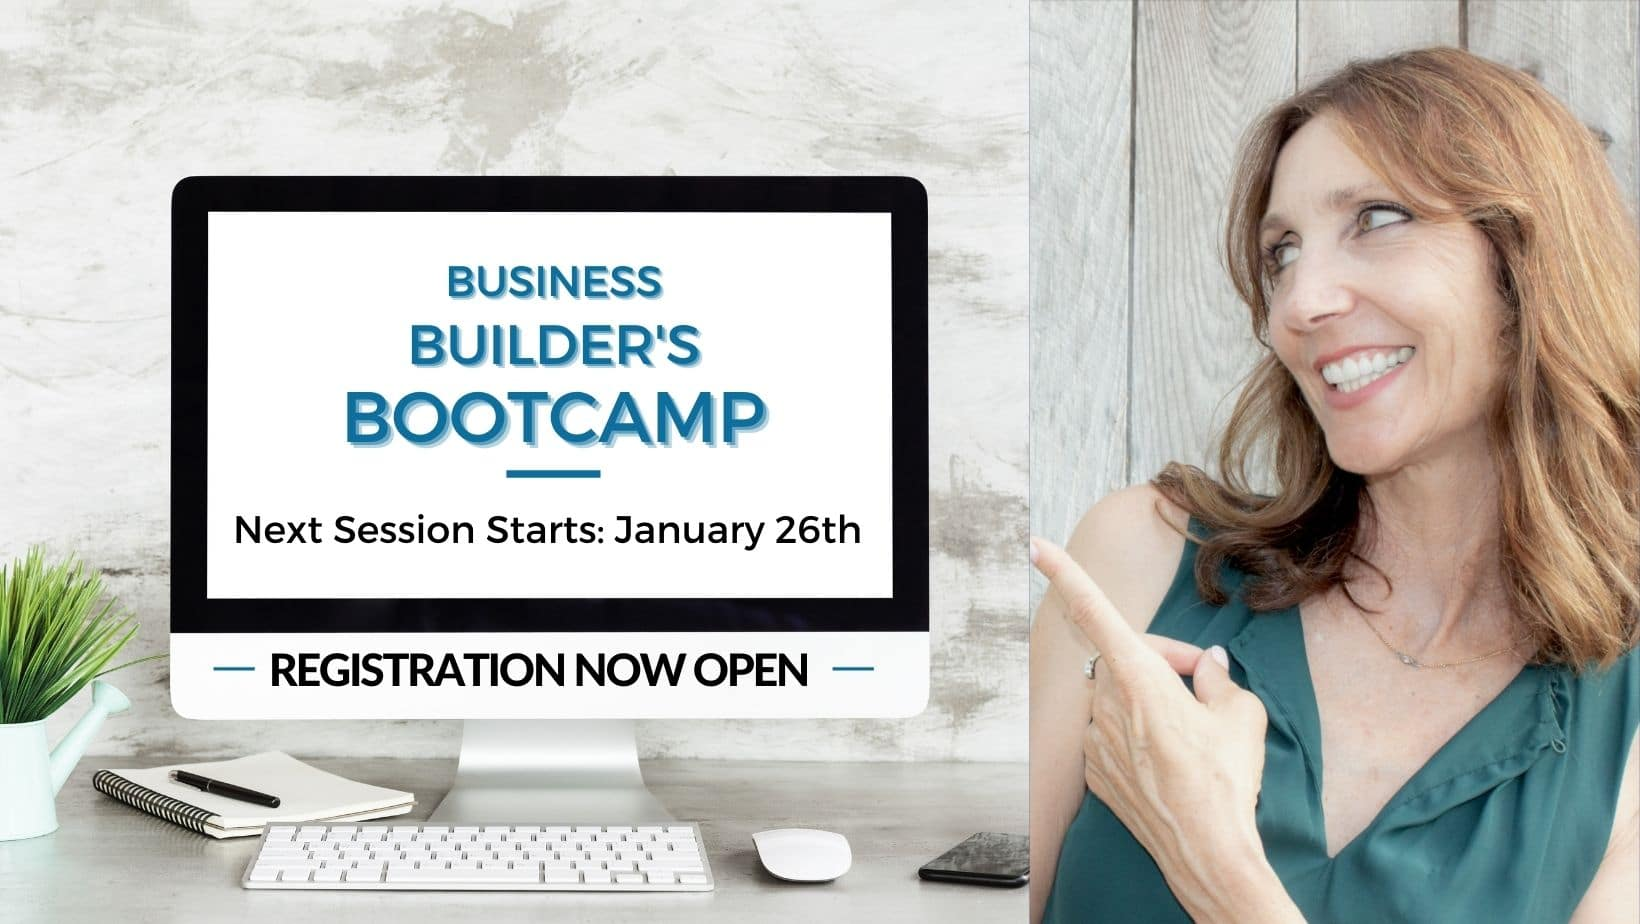 Jan.26th - Business Builder's Bootcamp